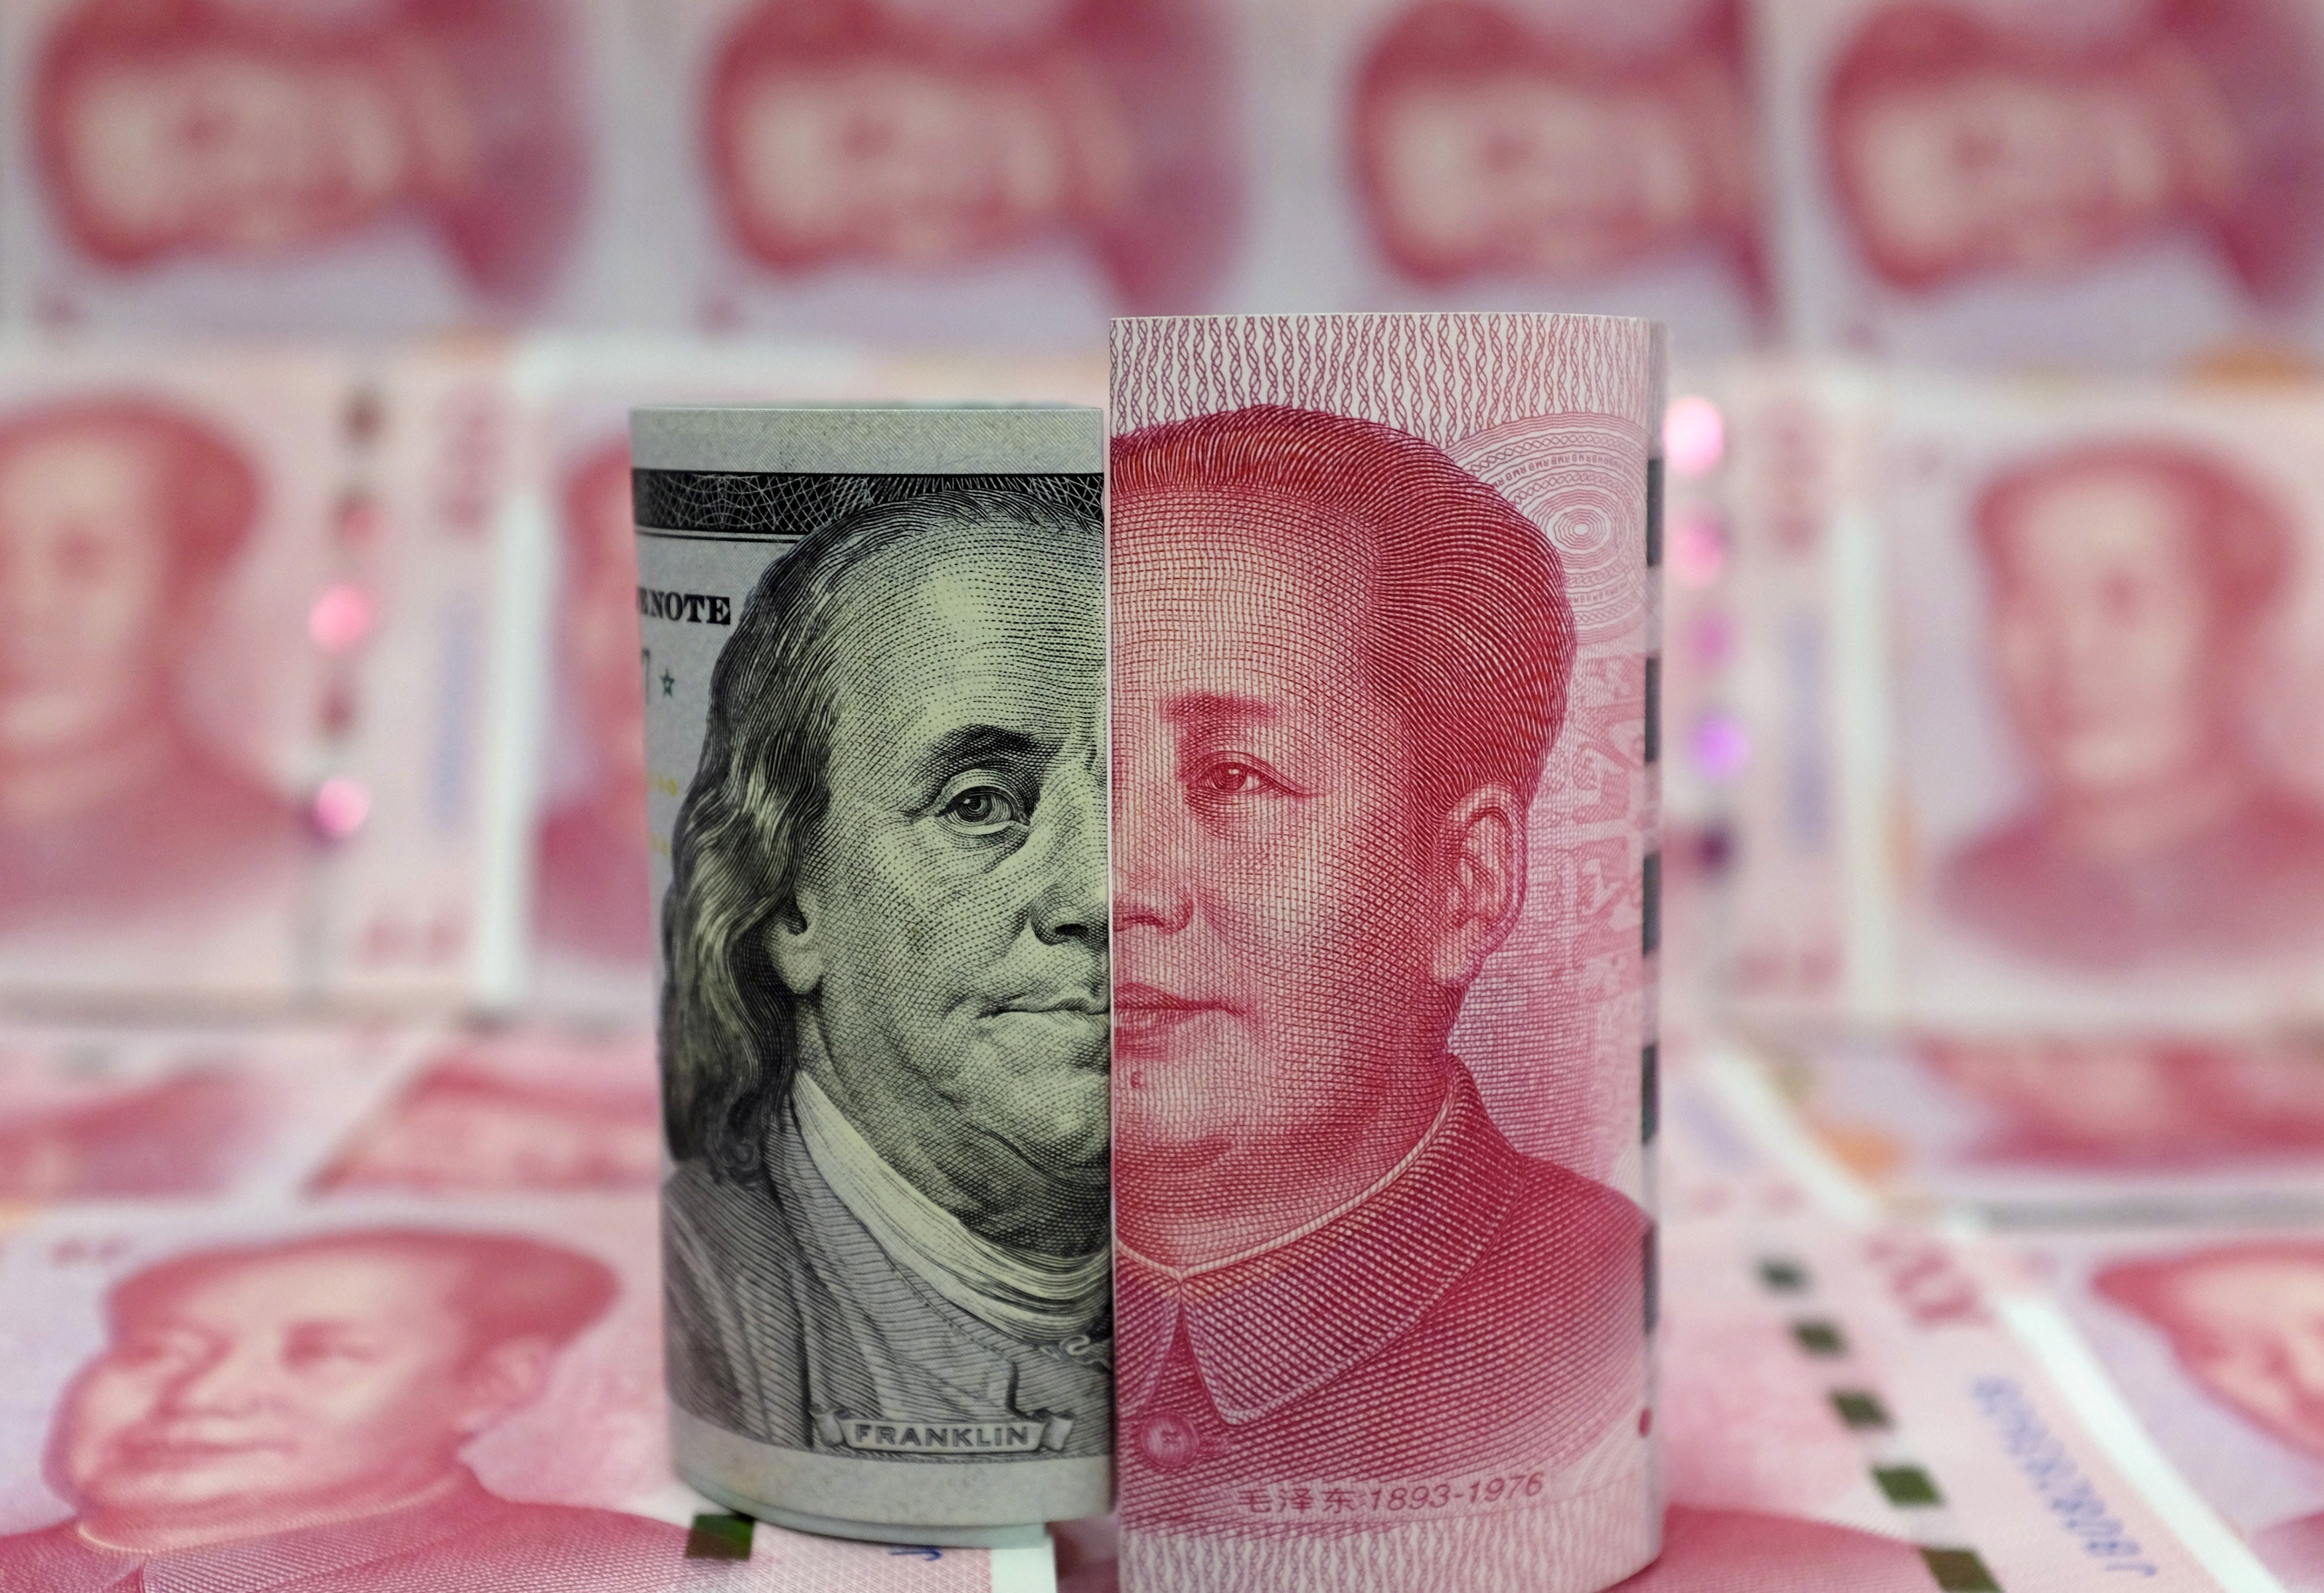 Washington's claim of currency manipulation by China is fantasy